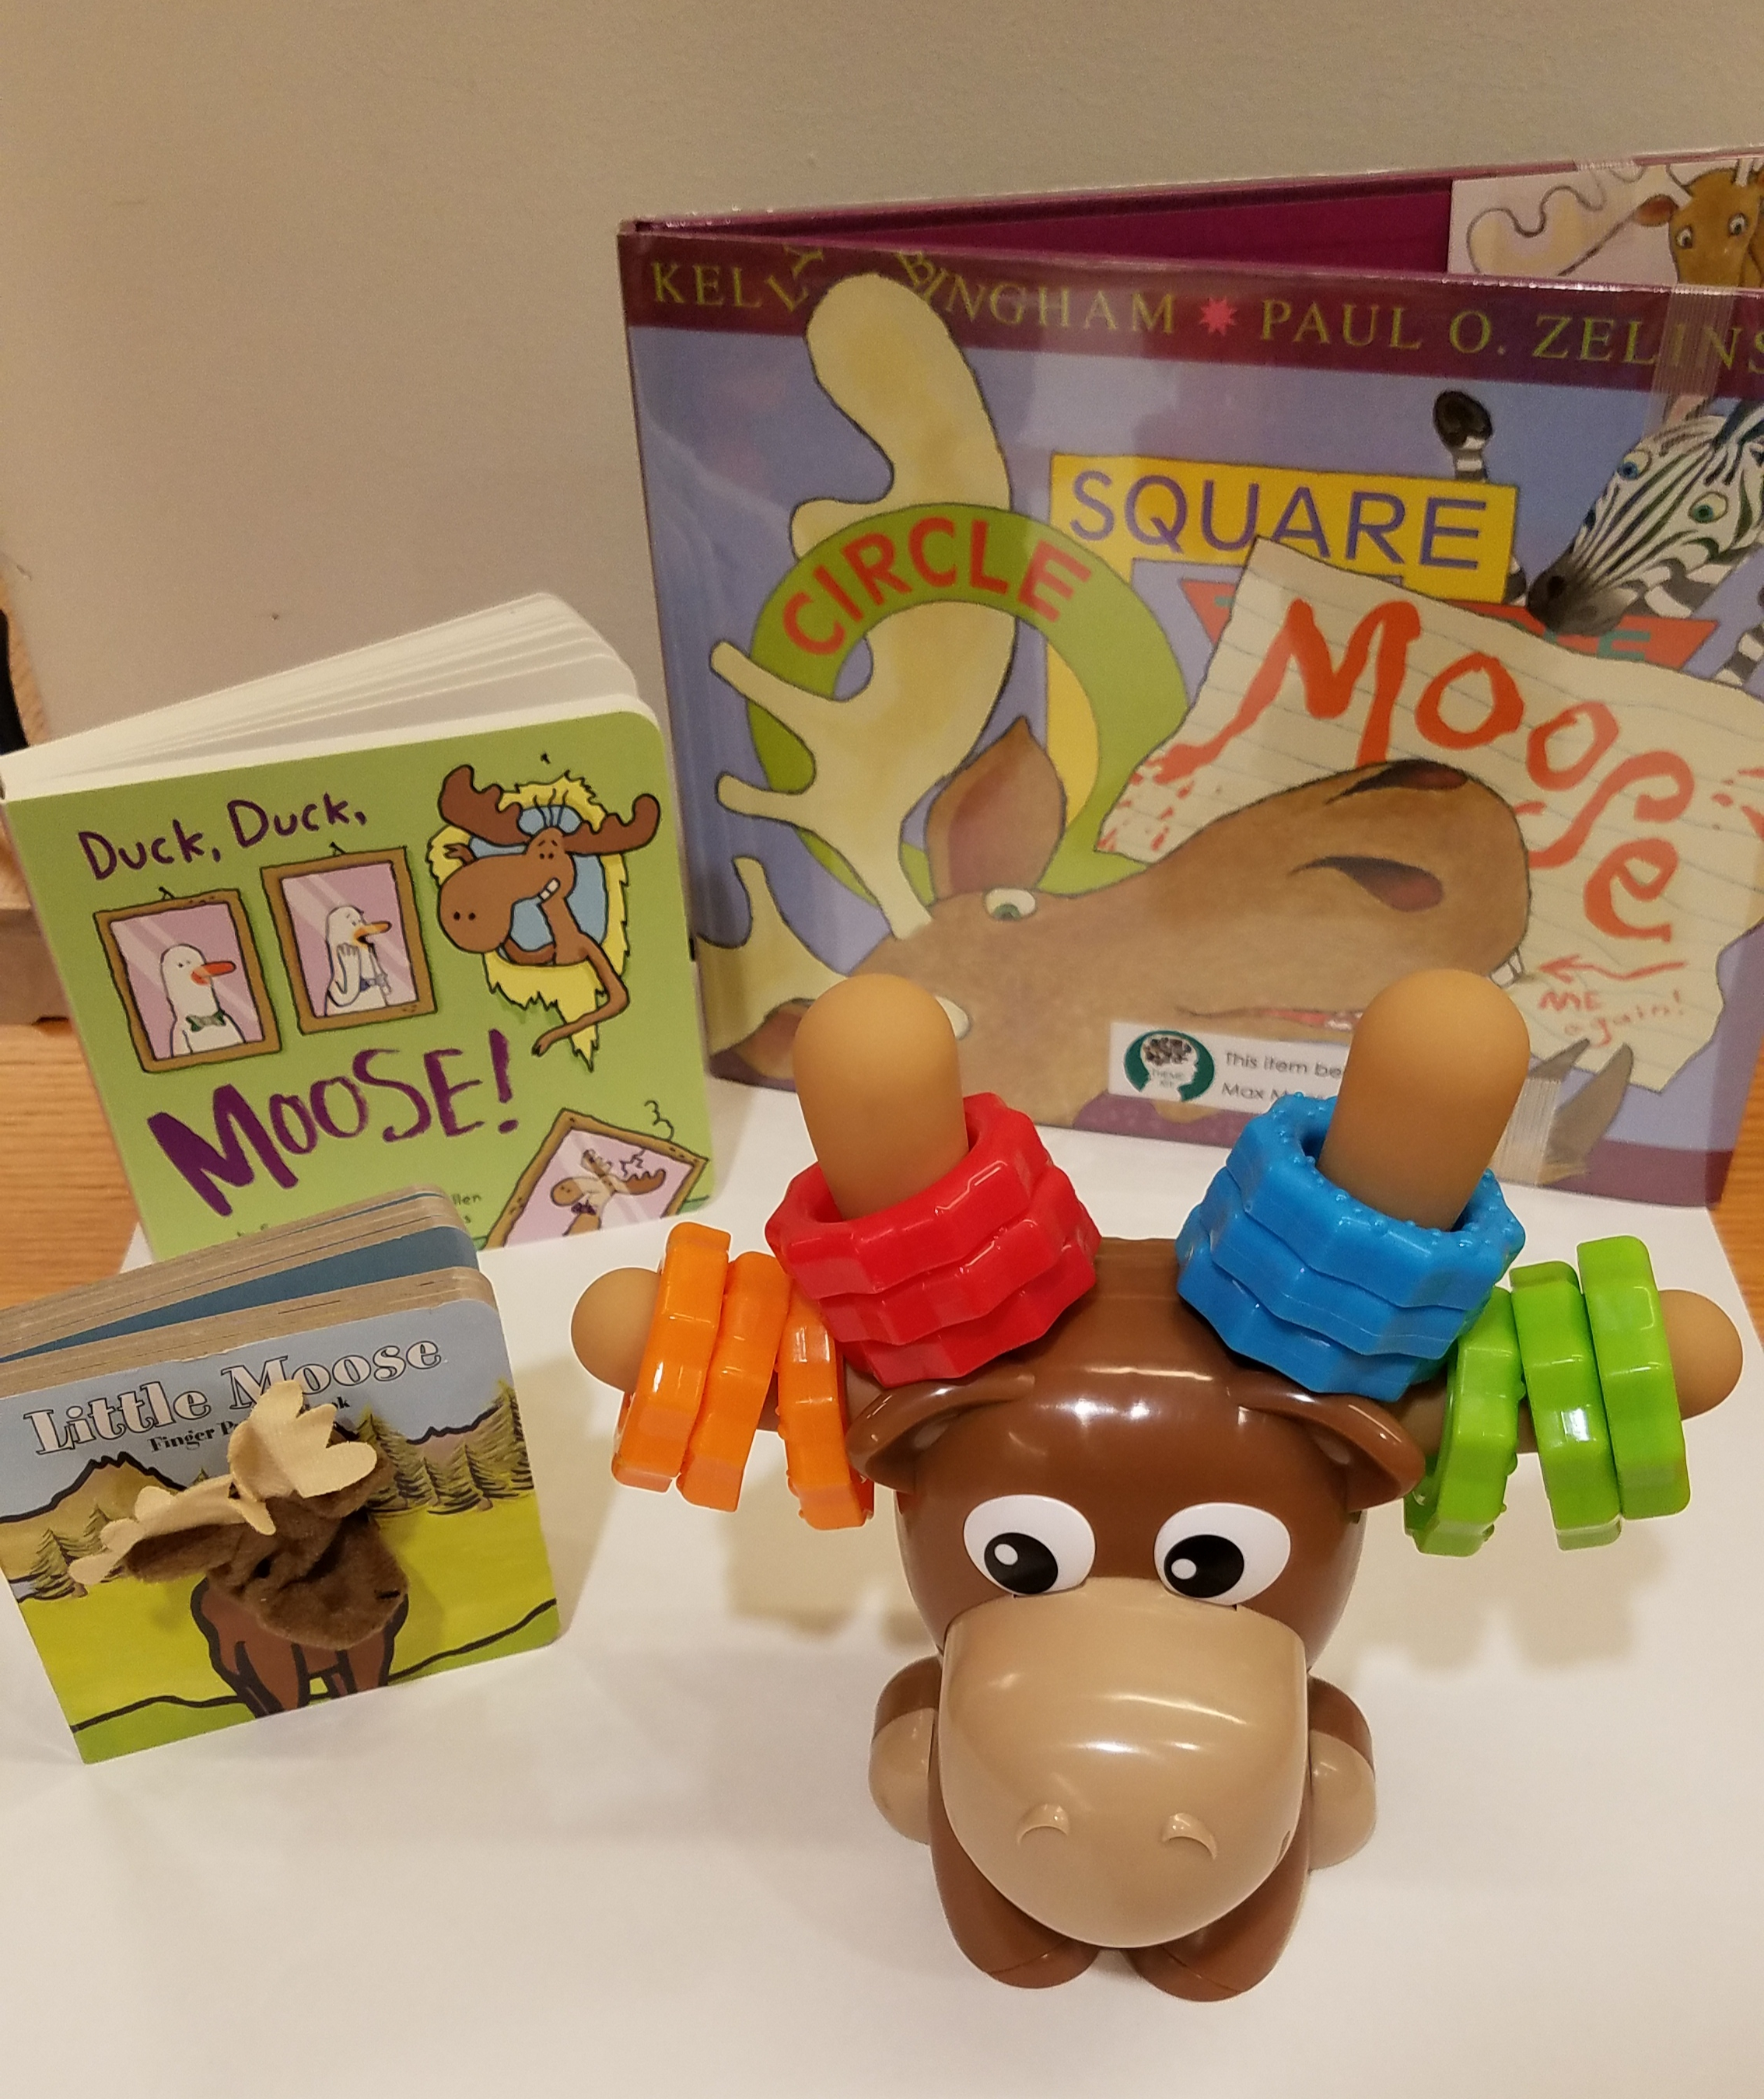 Max the Moose with books about Moose